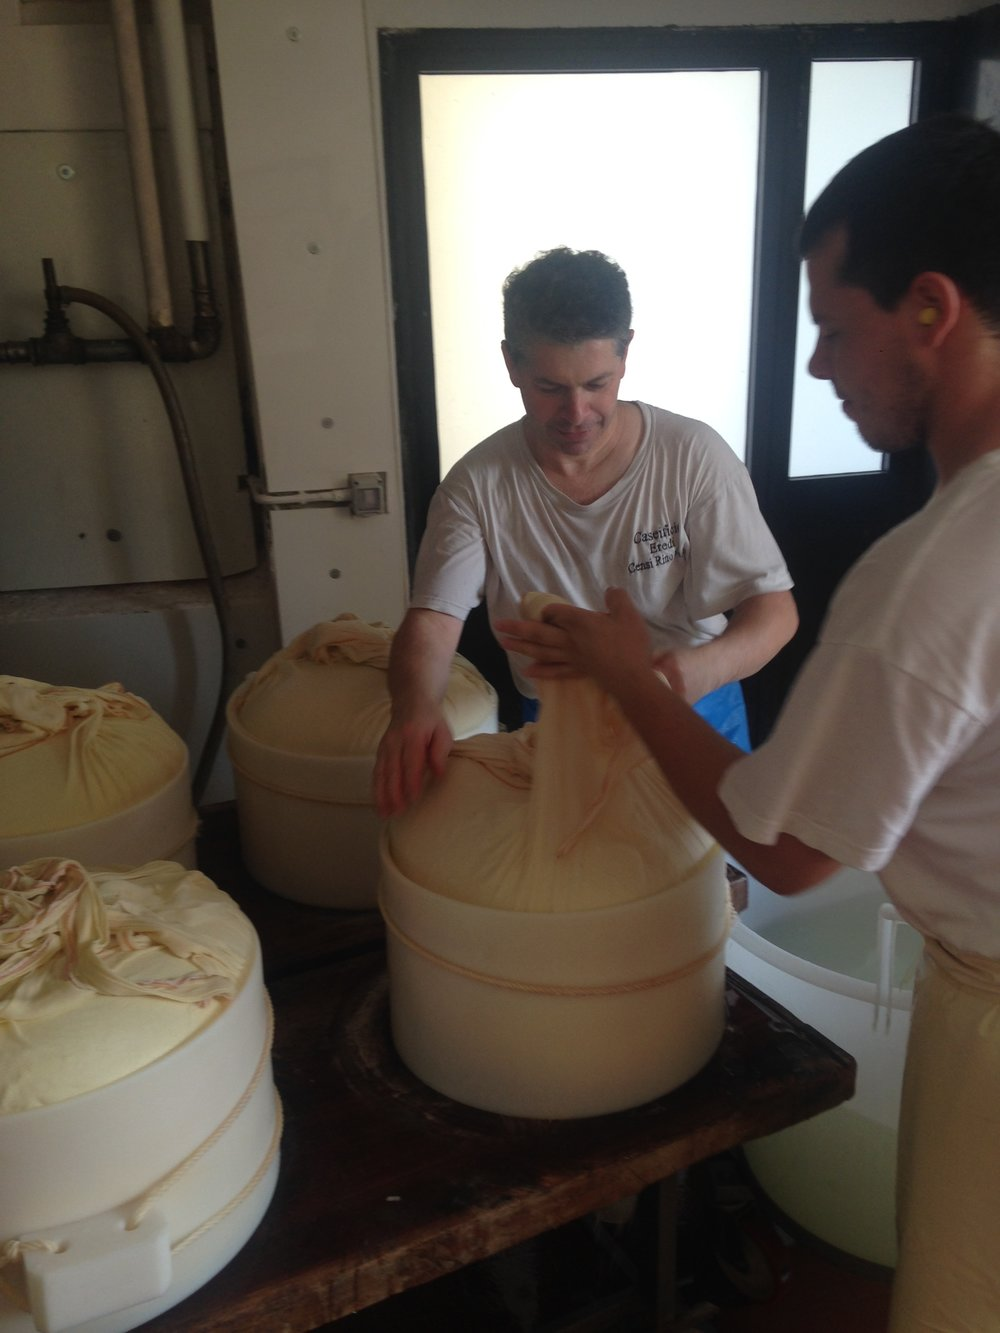 Parmesan making in progress